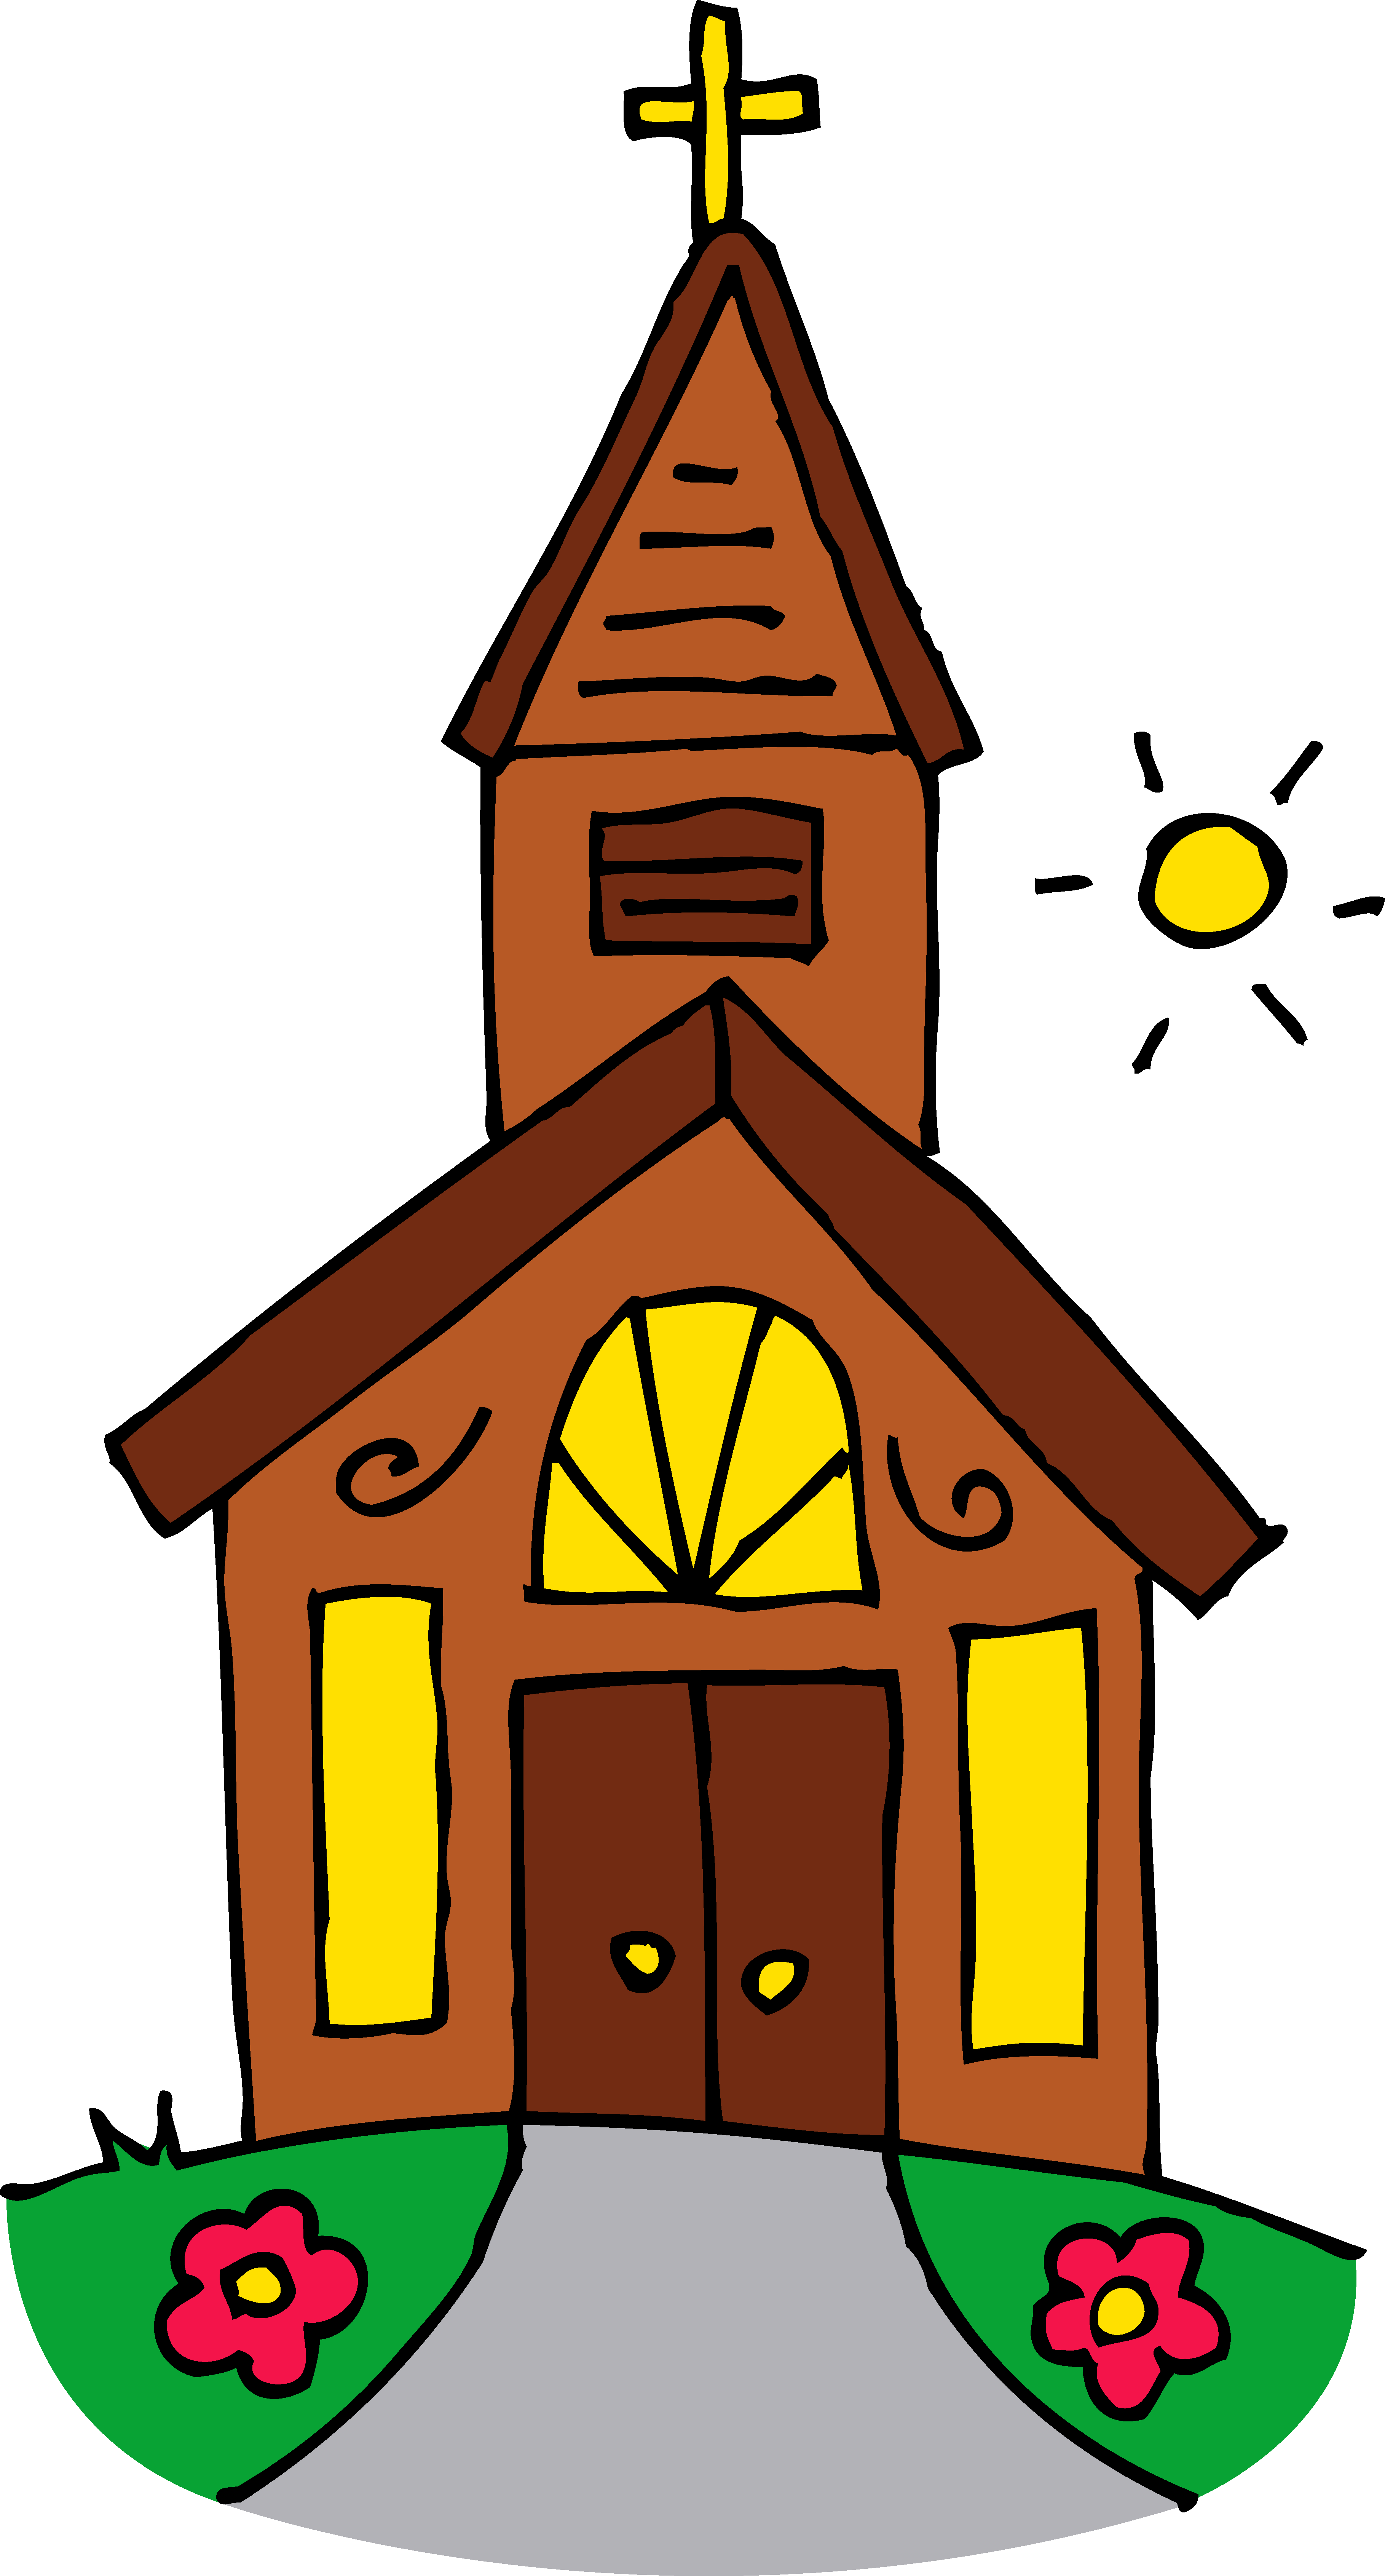 Free clipart pictures of churches jpg freeuse download Free Church Building Cliparts, Download Free Clip Art, Free Clip Art ... jpg freeuse download